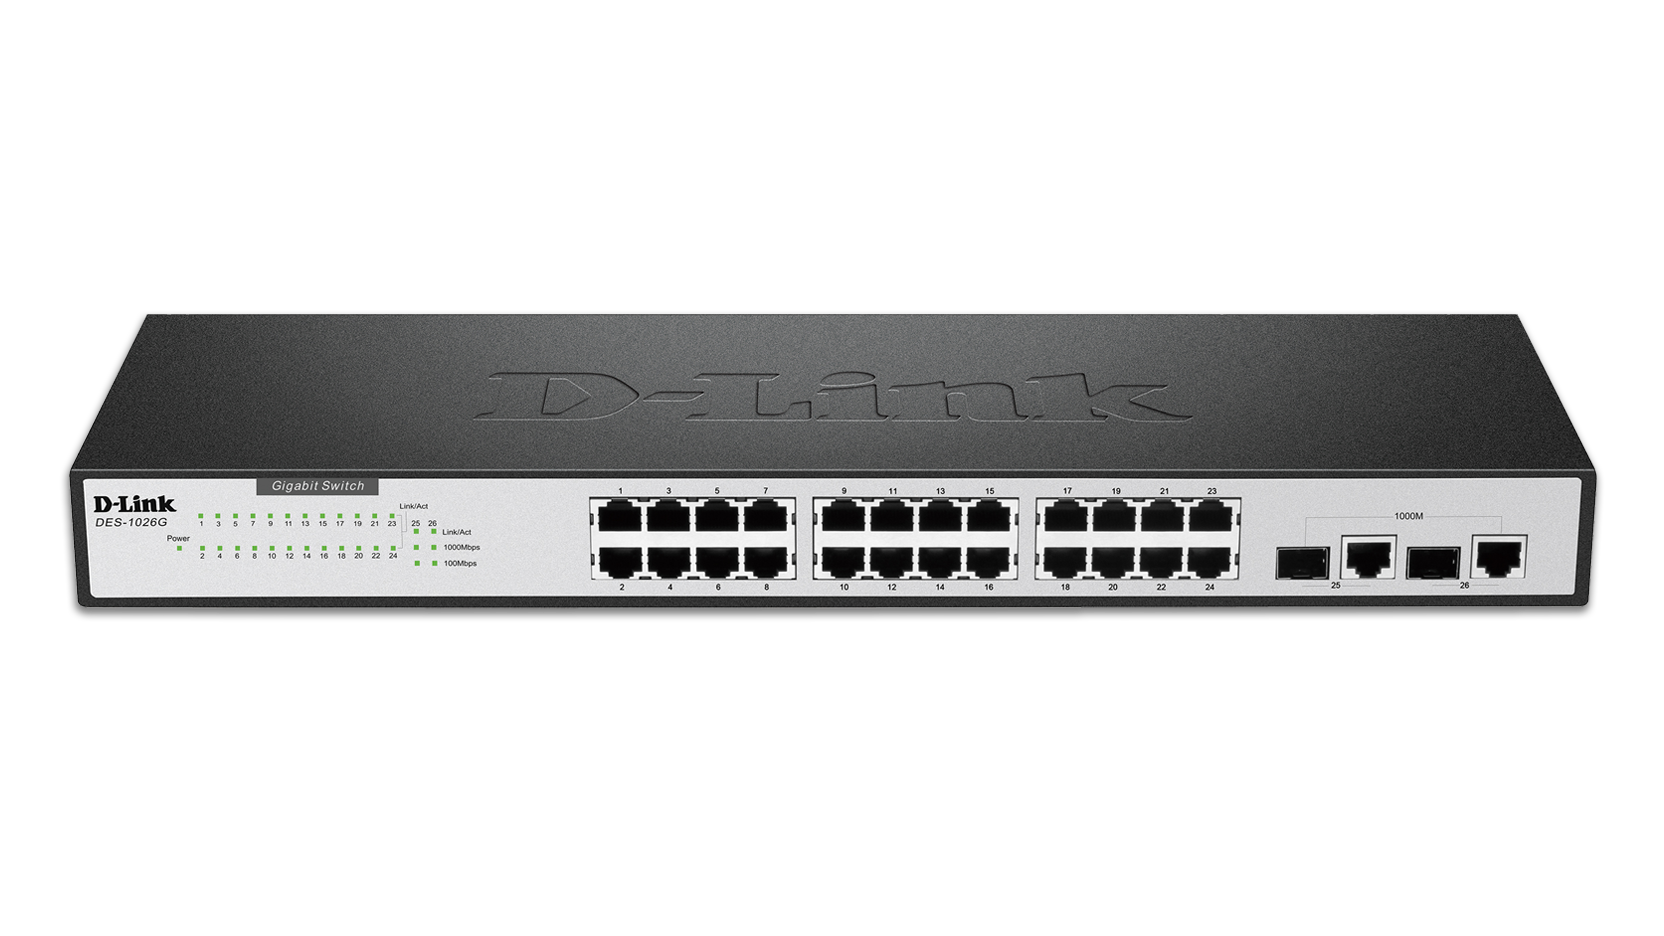 24-Port Fast Ethernet Switch with 2 Gigabit Ports (DES-1026G) | D-Link